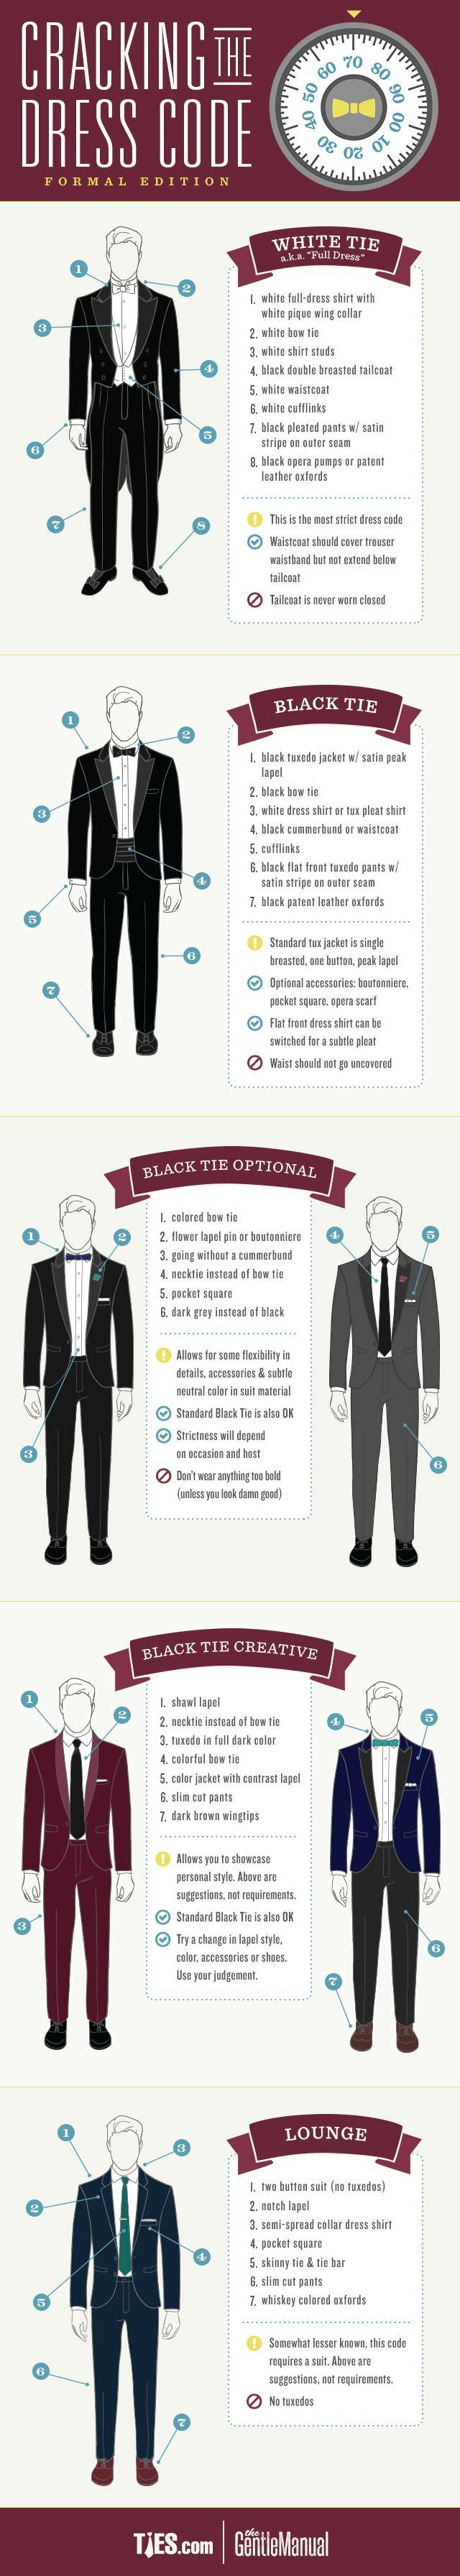 Infographic of cracking the formal dress codes